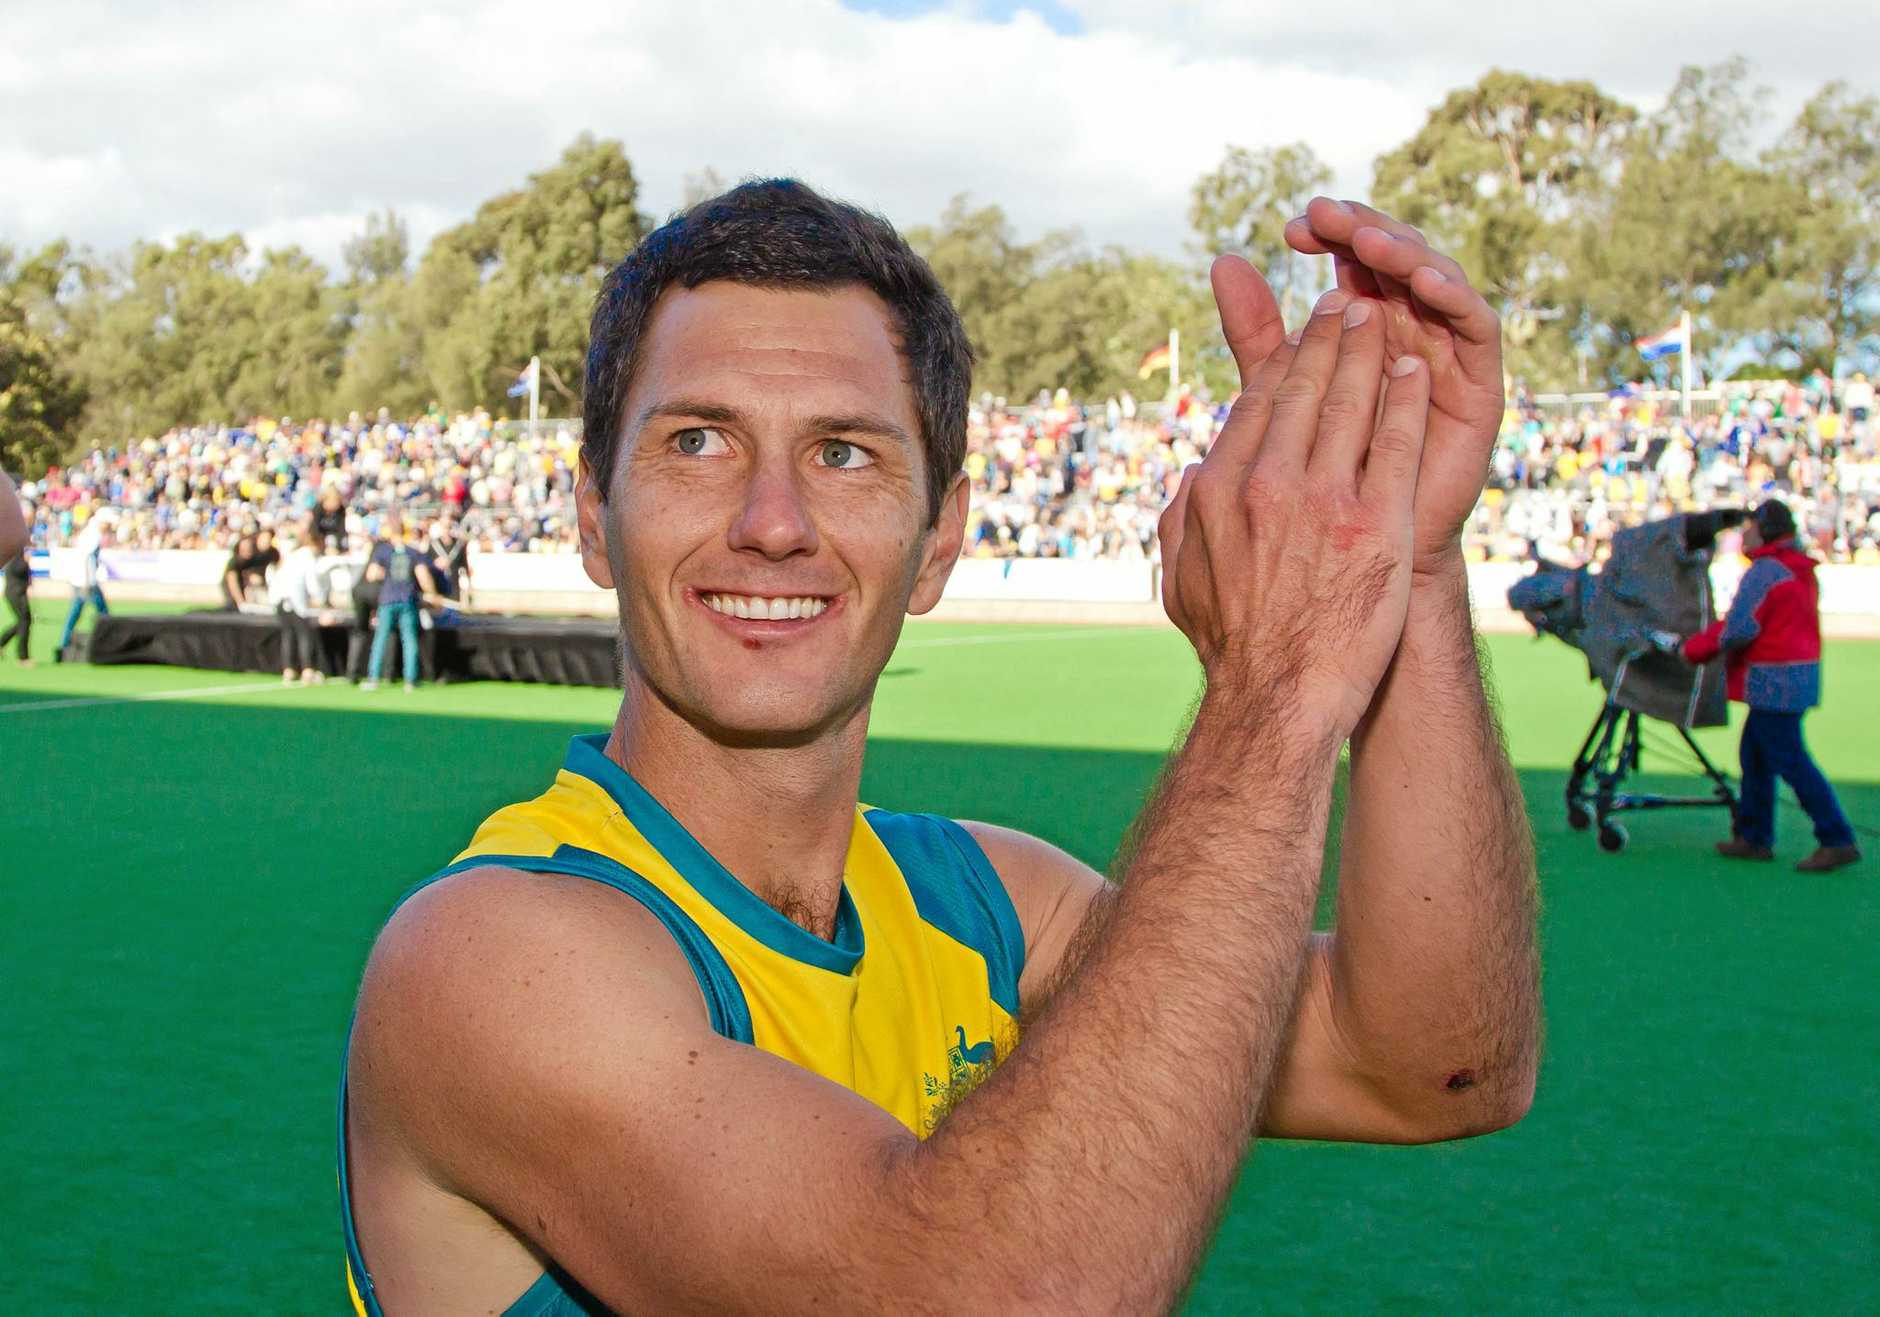 Jamie Dwyer celebrates Australia's win during the Day 6 Australia v Netherlands final match at the Men's Hockey Champions Trophy in Melbourne, Sunday, Dec. 9, 2012. (AAP Image/Grant Treeby) NO ARCHIVING